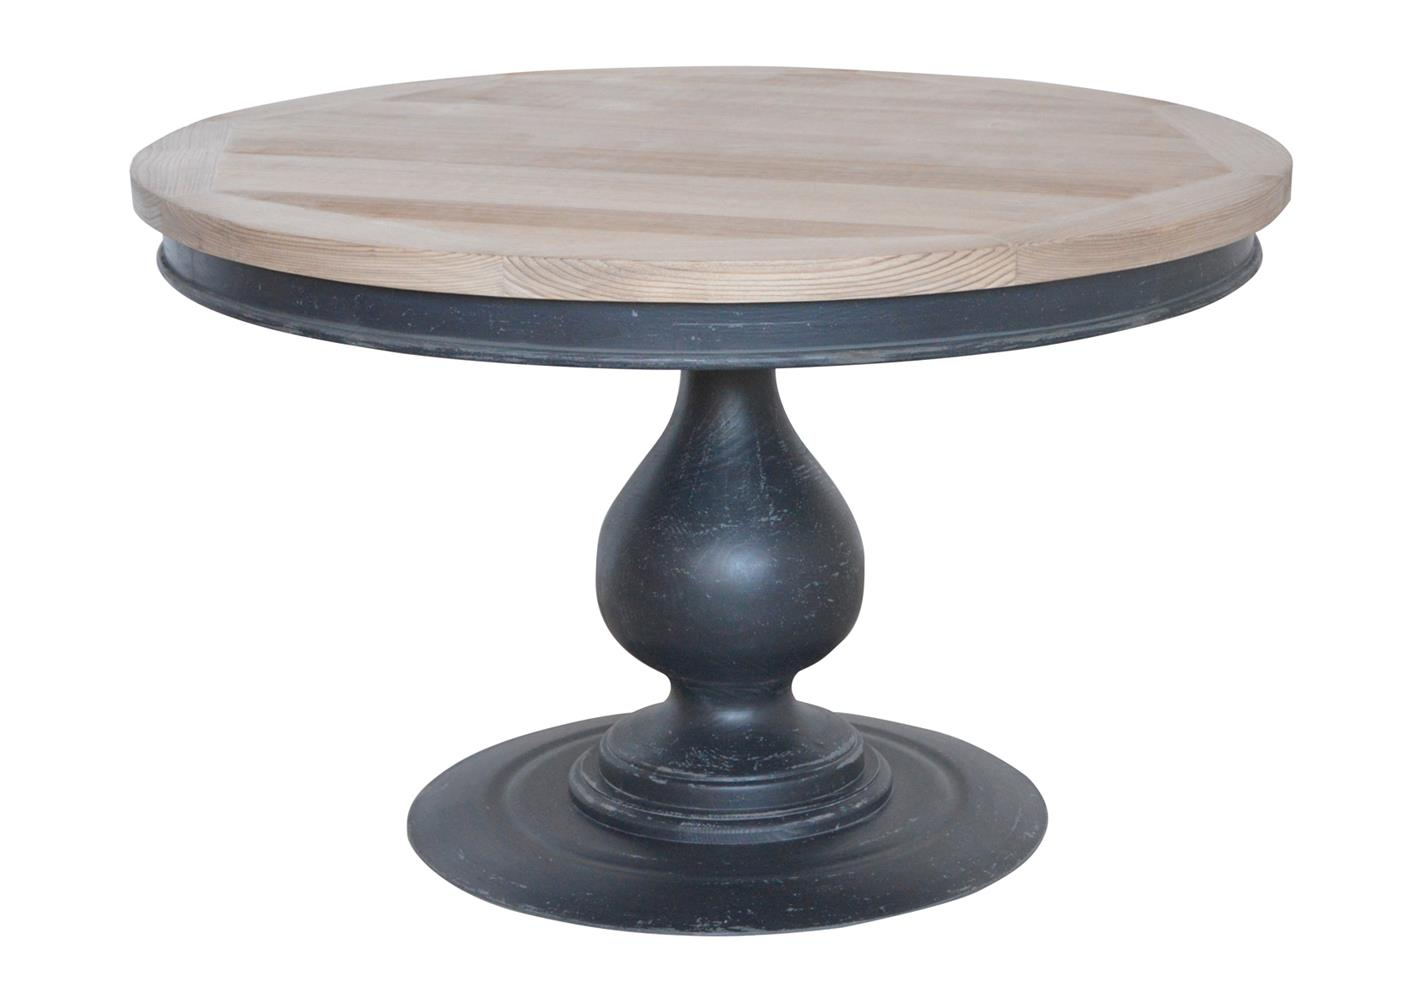 Acheter votre table pied central original en pin massif - Pied de table original ...